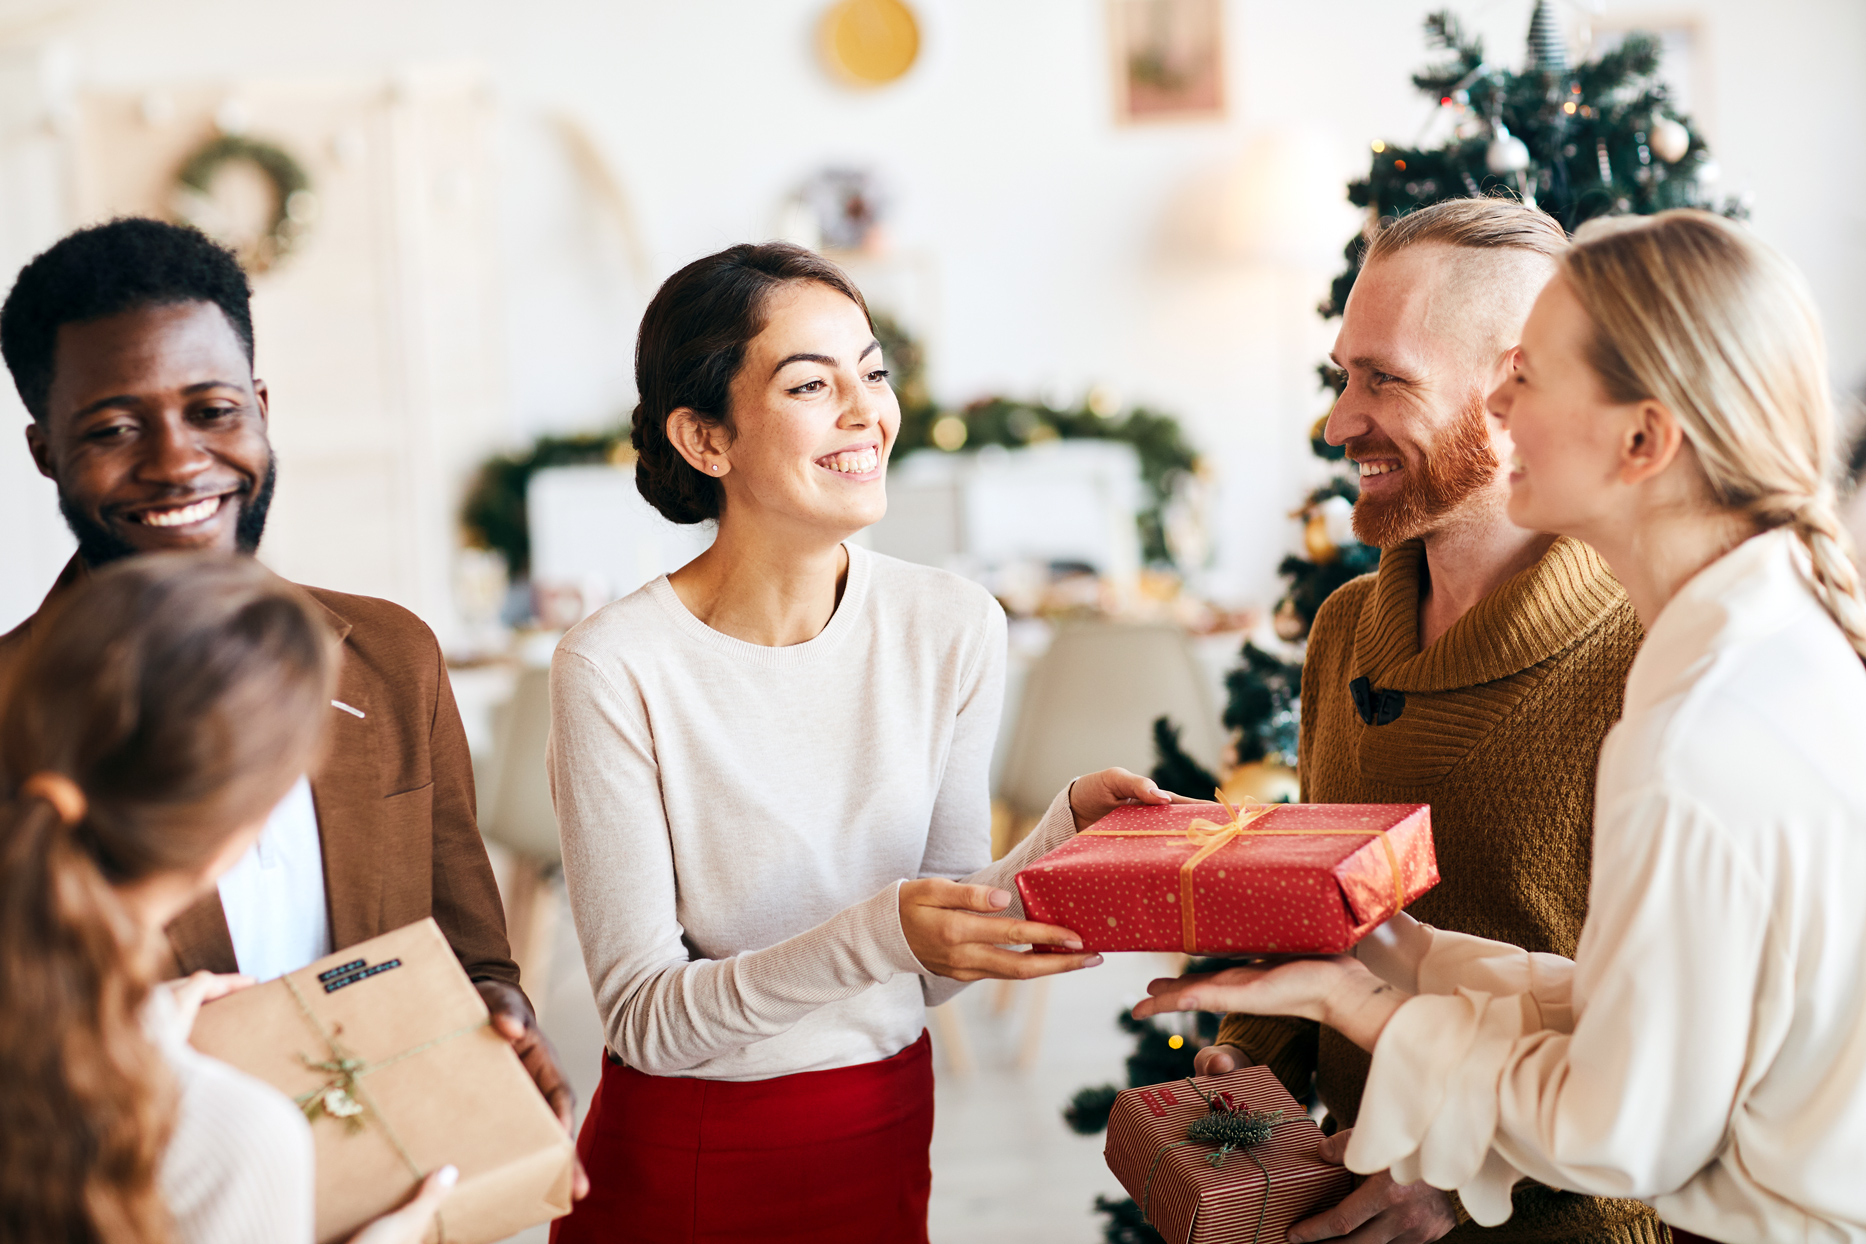 An Introvert's Guide to Hosting a Holiday Party